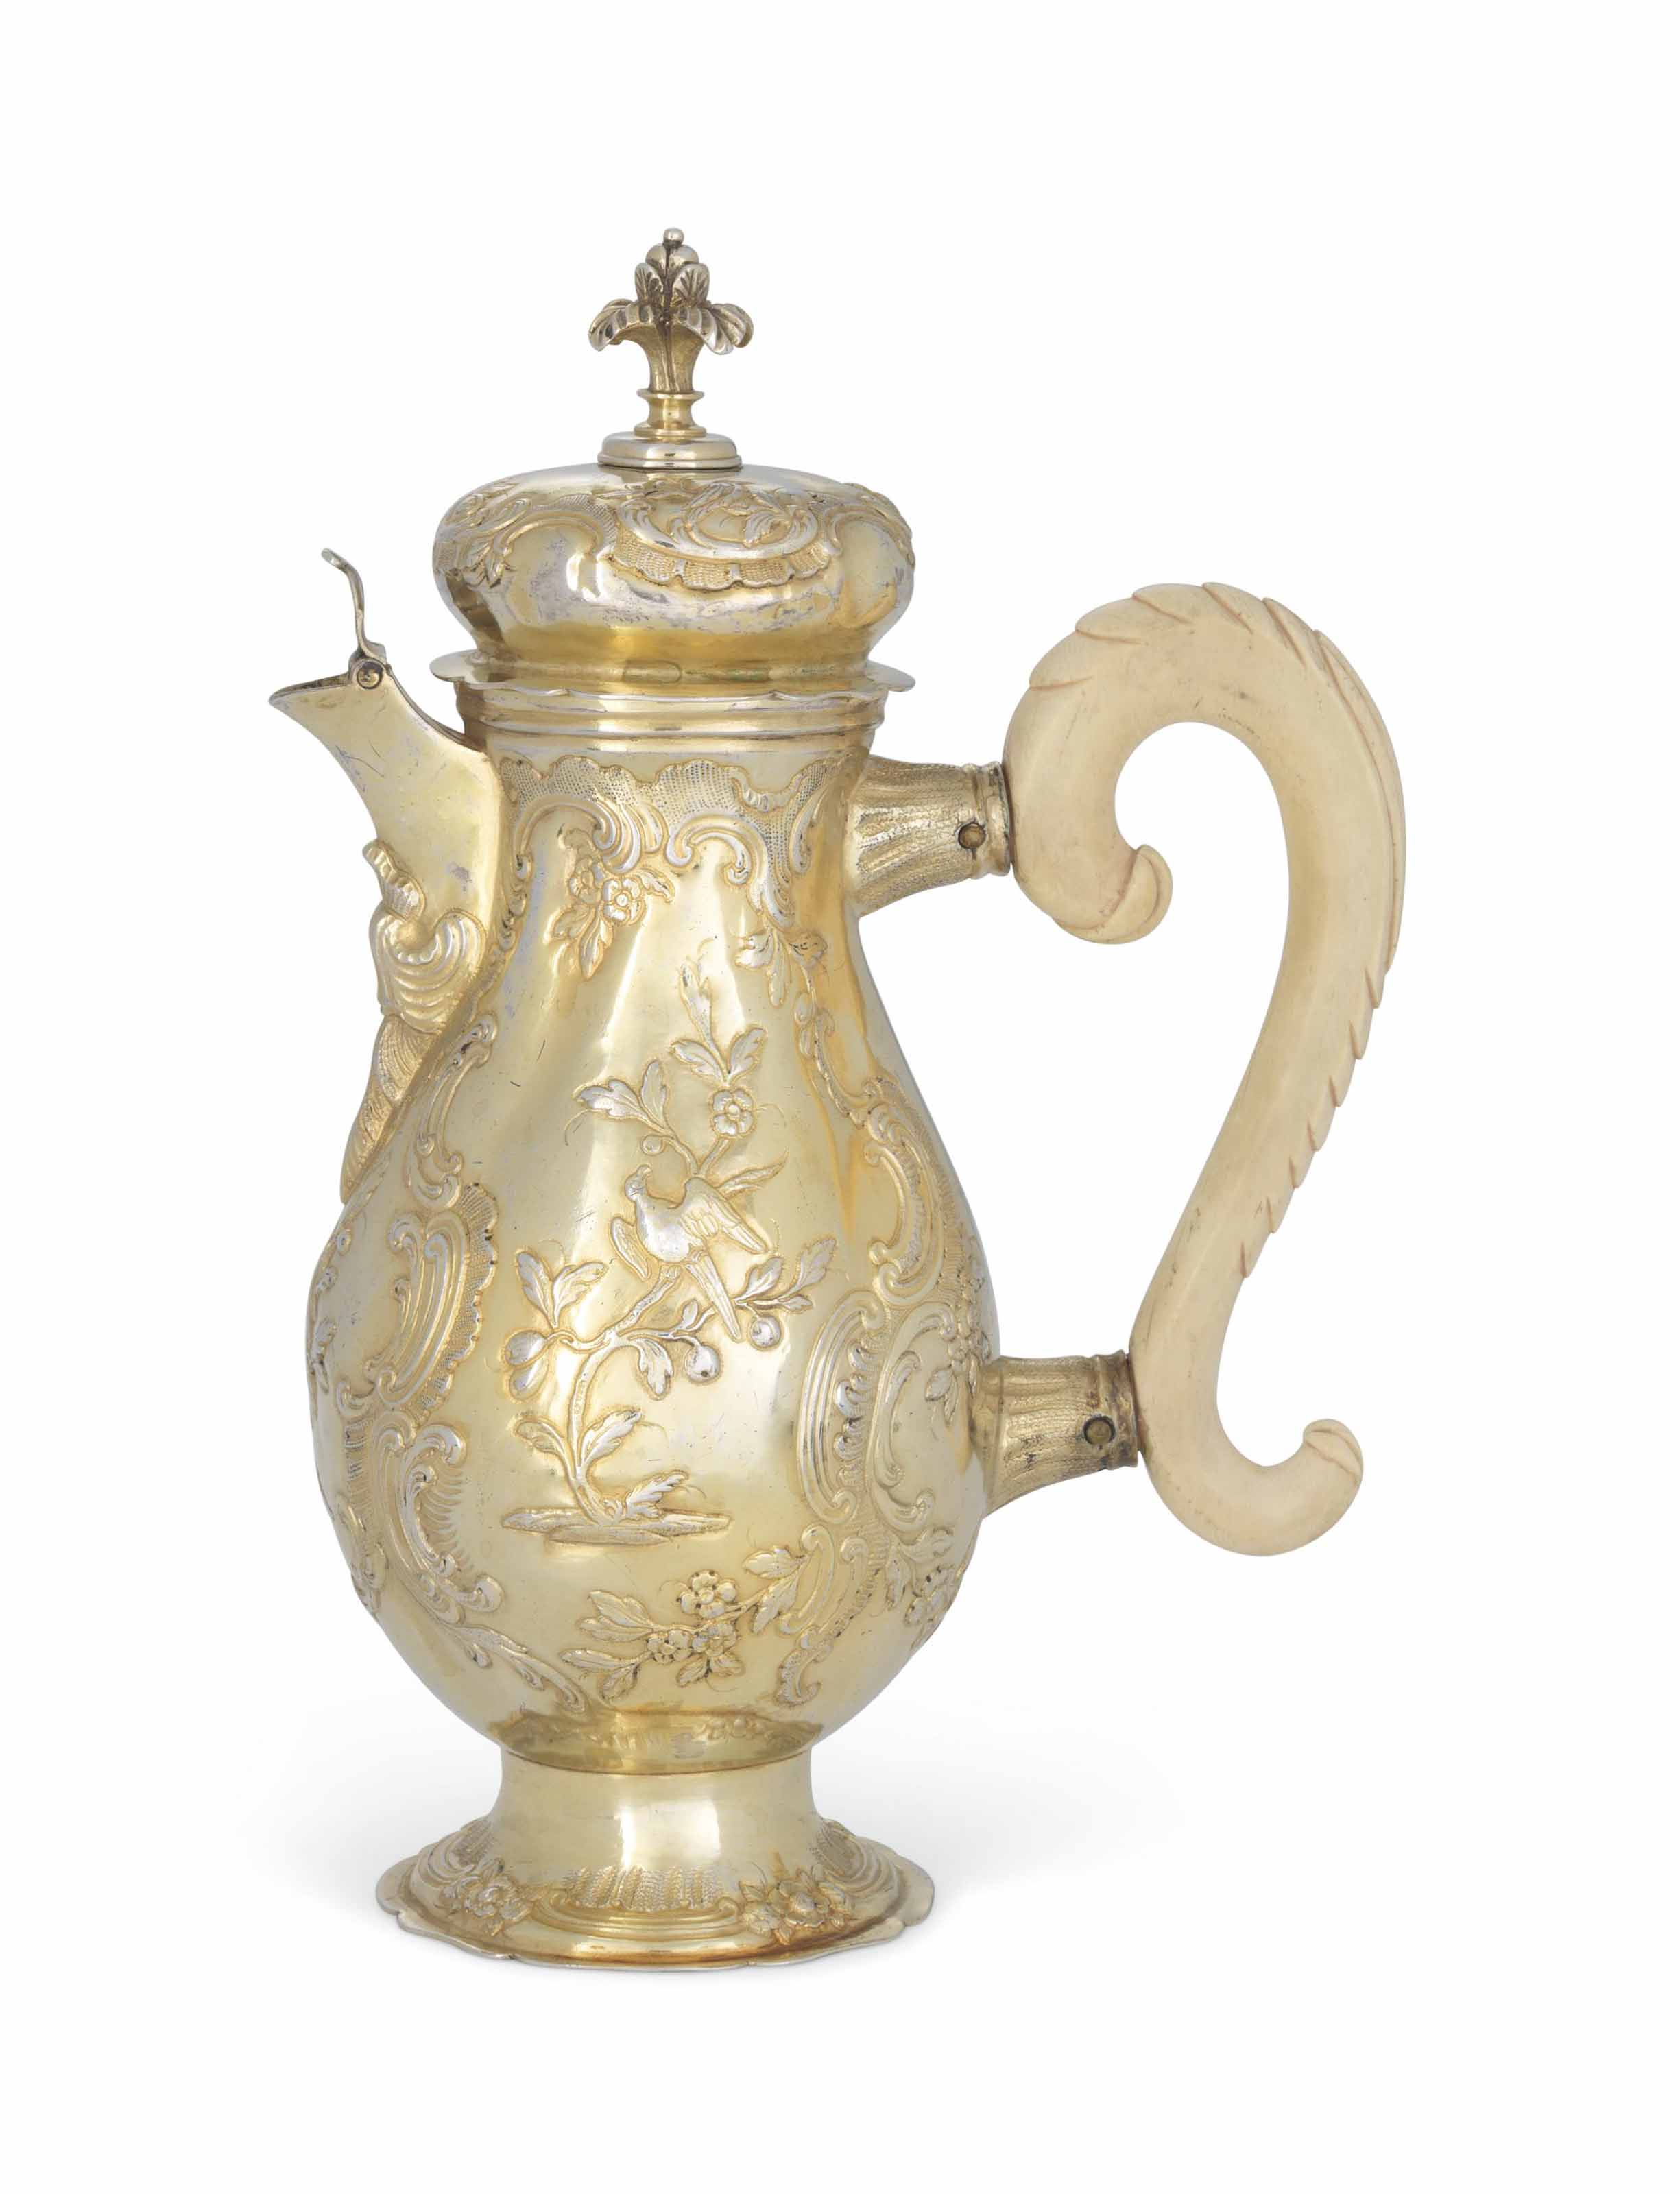 A GERMAN SILVER-GILT HOT-MILK JUG